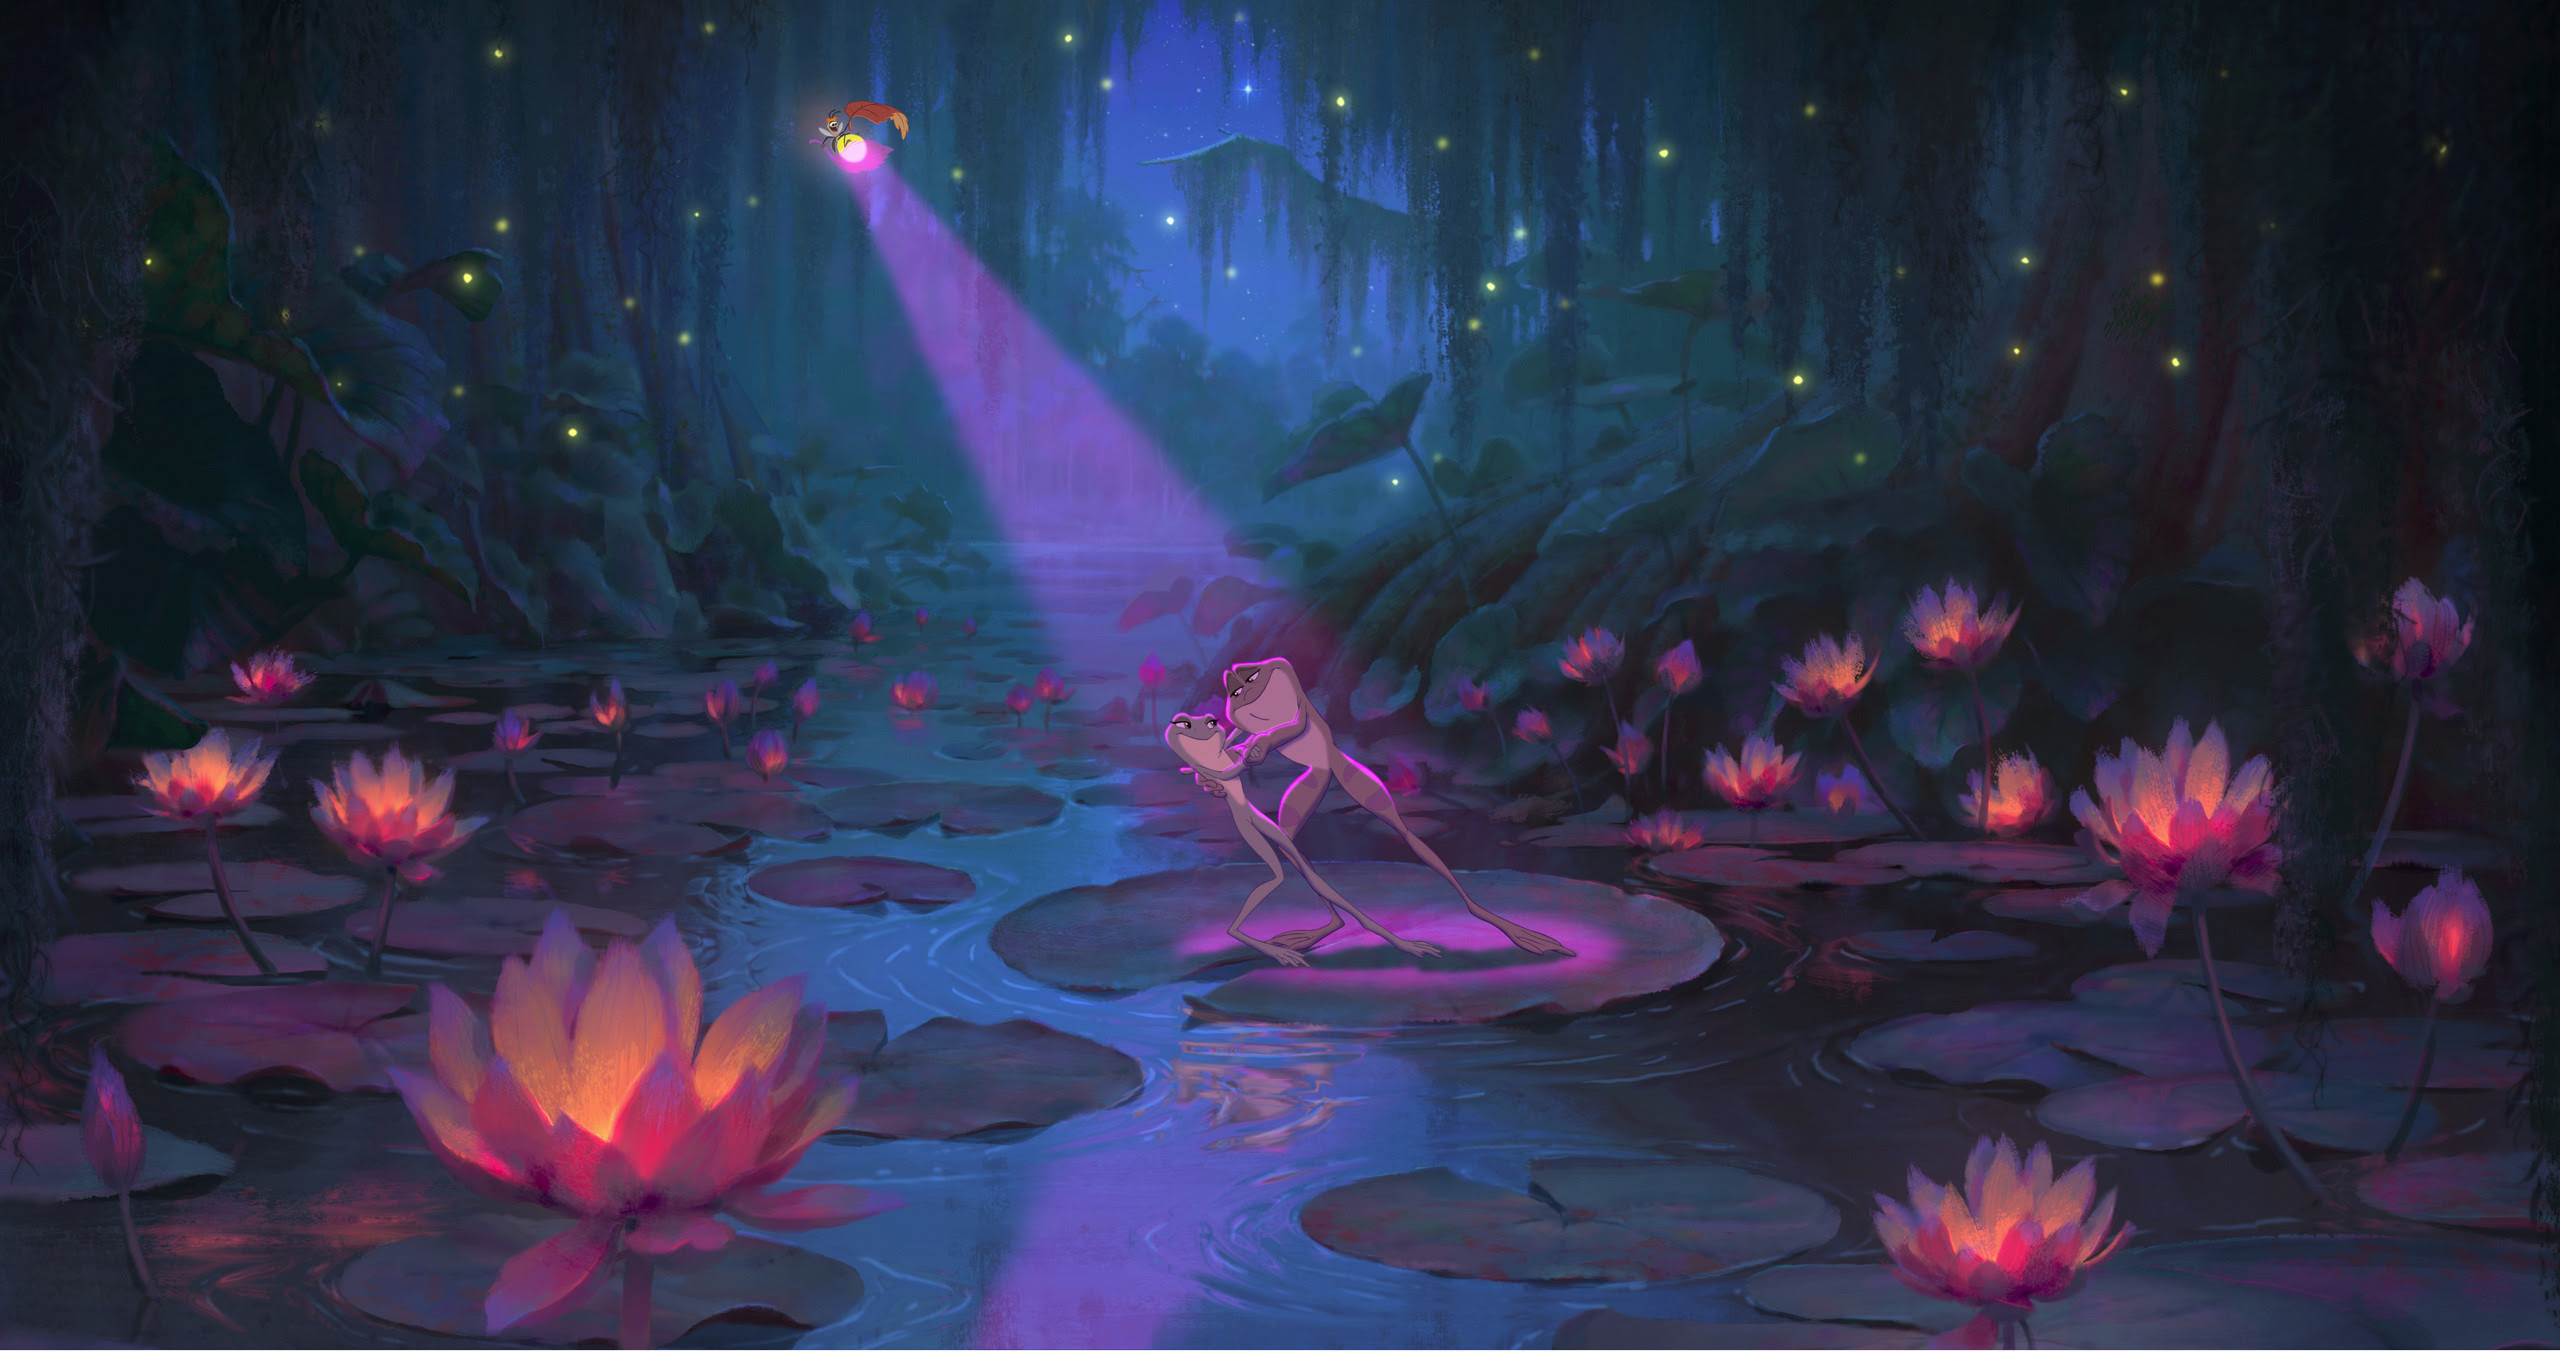 Princess And The Frog Wallpaper 58 Images